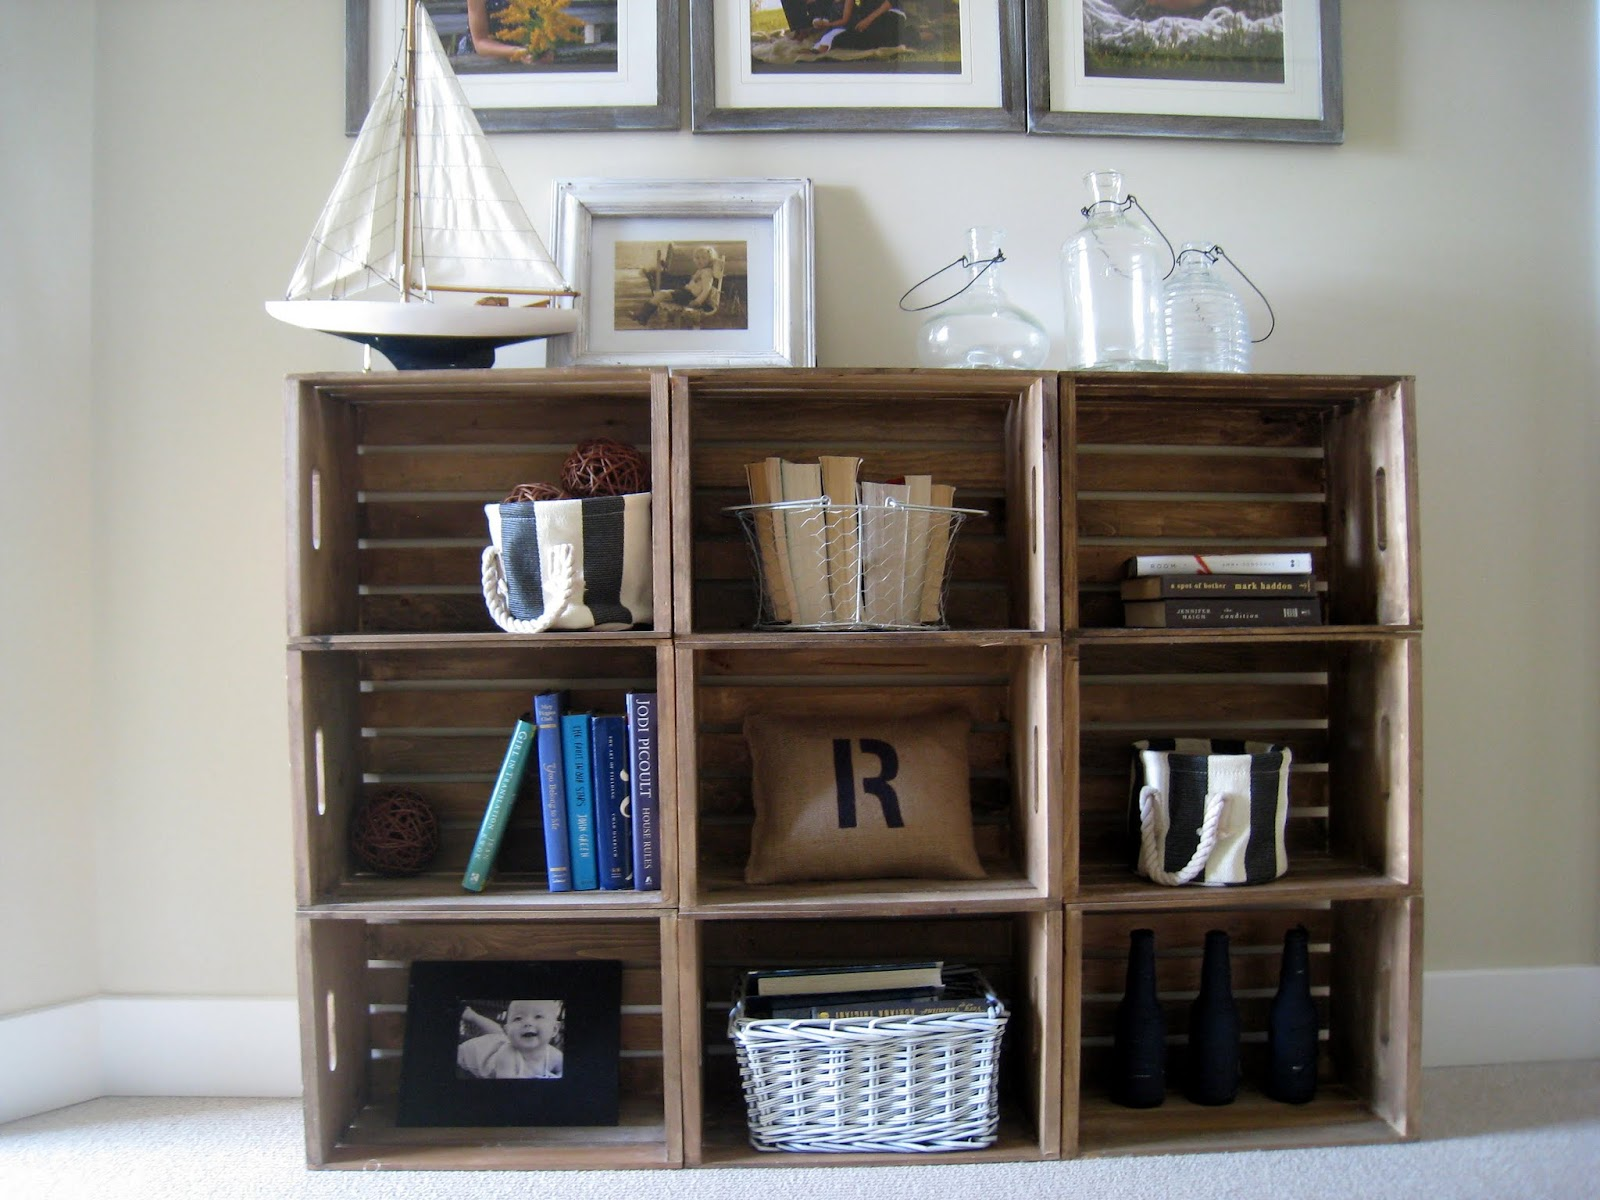 easy crate bookshelves - Using Crates As Bookshelves